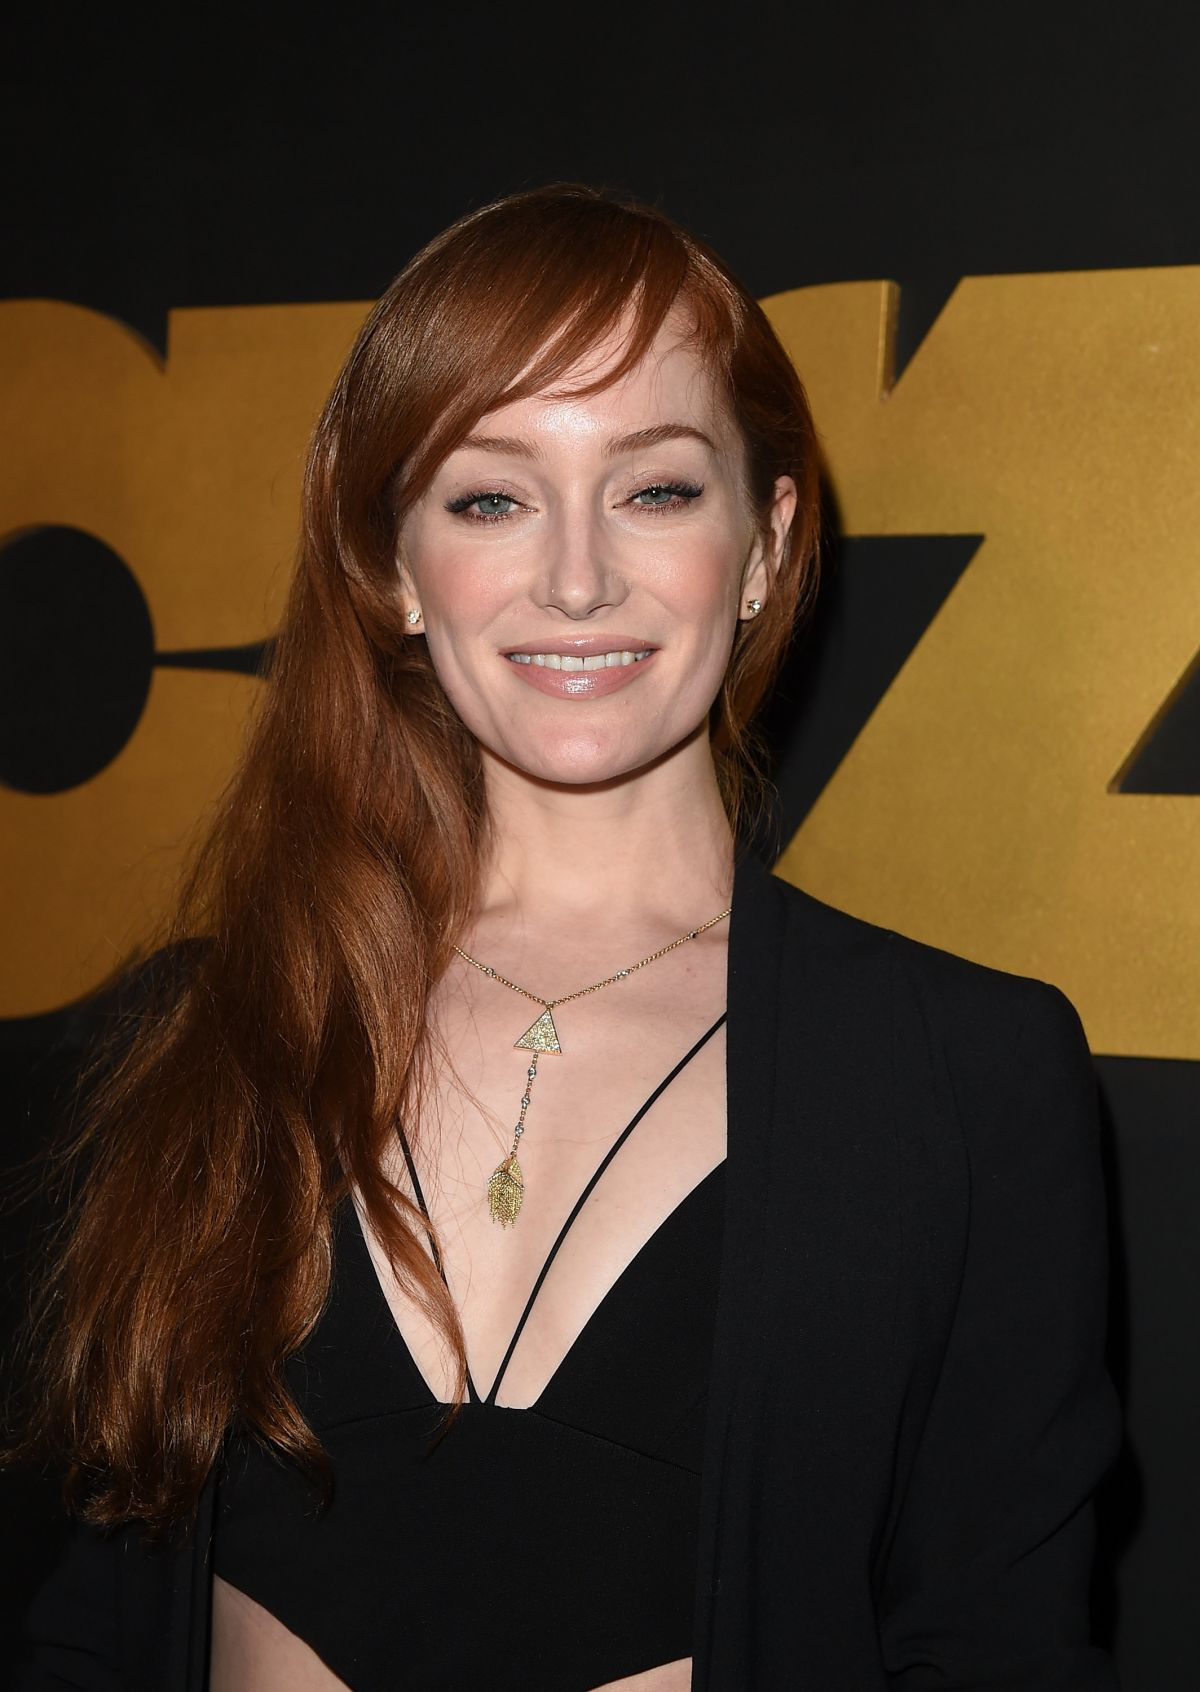 lotte verbeek me in my placelotte verbeek outlander, lotte verbeek imdb, lotte verbeek height, lotte verbeek fansite, lotte verbeek height weight, lotte verbeek insta, lotte verbeek borgias, lotte verbeek instagram, lotte verbeek, lotte verbeek the fault in our stars, lotte verbeek twitter, lotte verbeek boyfriend, lotte verbeek interview, lotte verbeek me in my place, lotte verbeek husband, lotte verbeek listal, lotte verbeek hot, lotte verbeek blacklist, lotte verbeek wiki, lotte verbeek pregnant